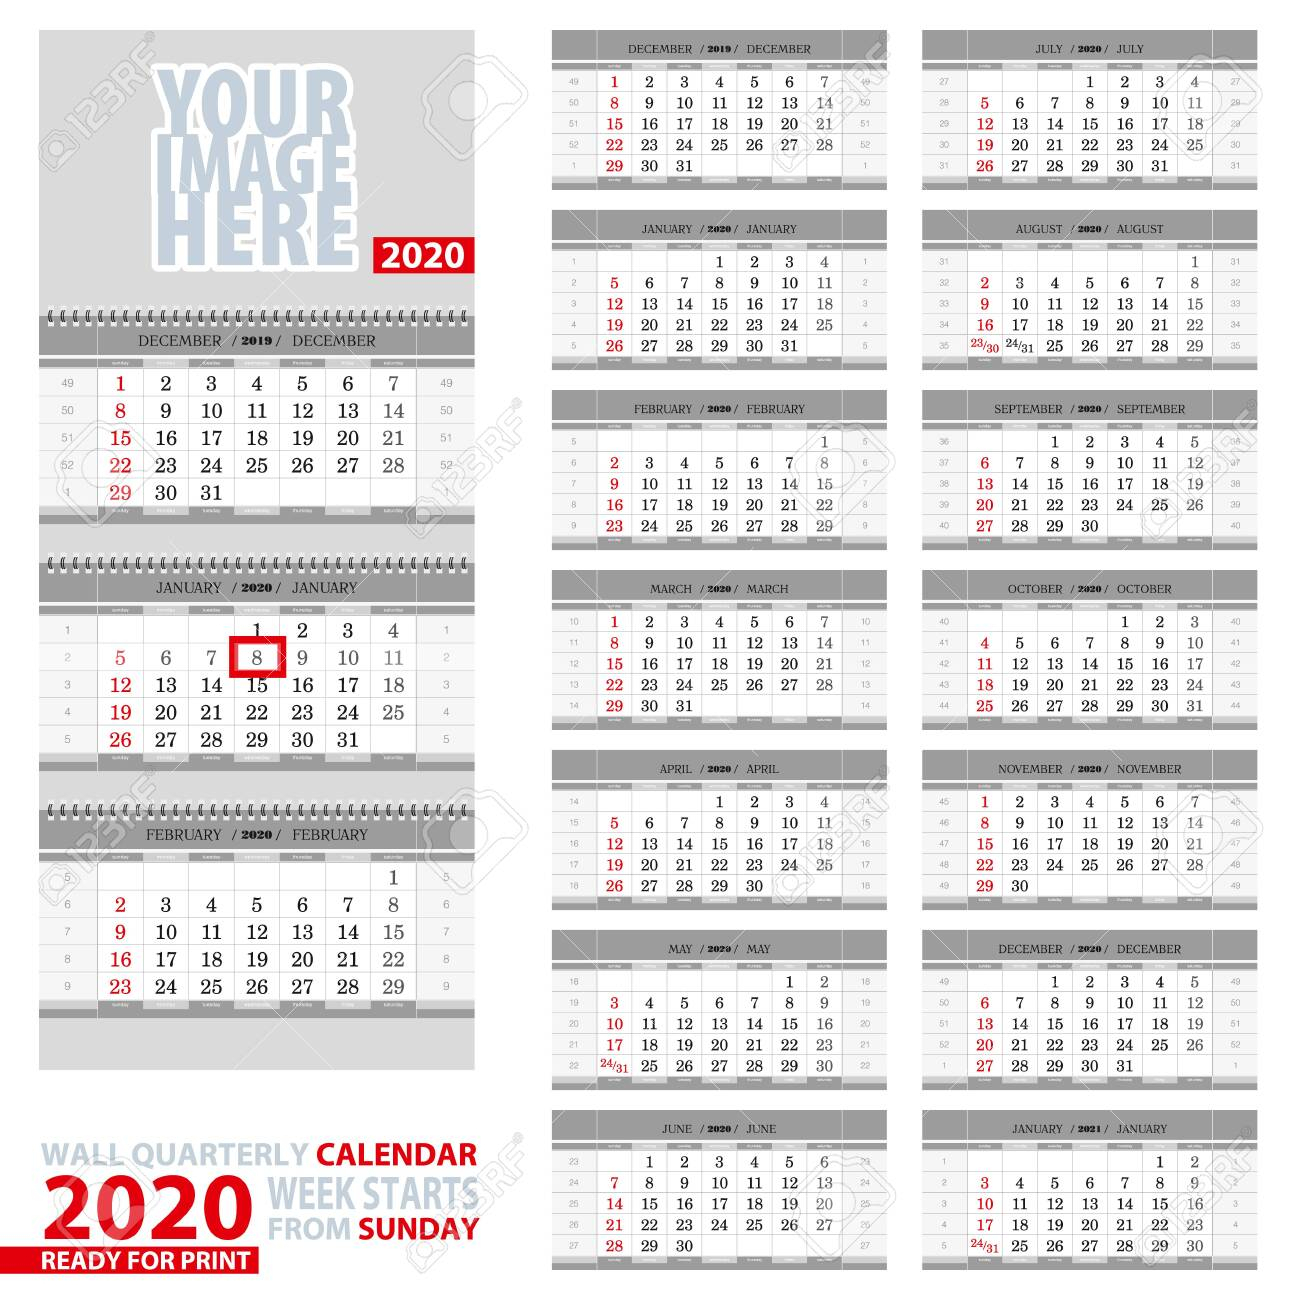 Wall Quarterly Calendar 2020. Week Start From Sunday, Ready For..